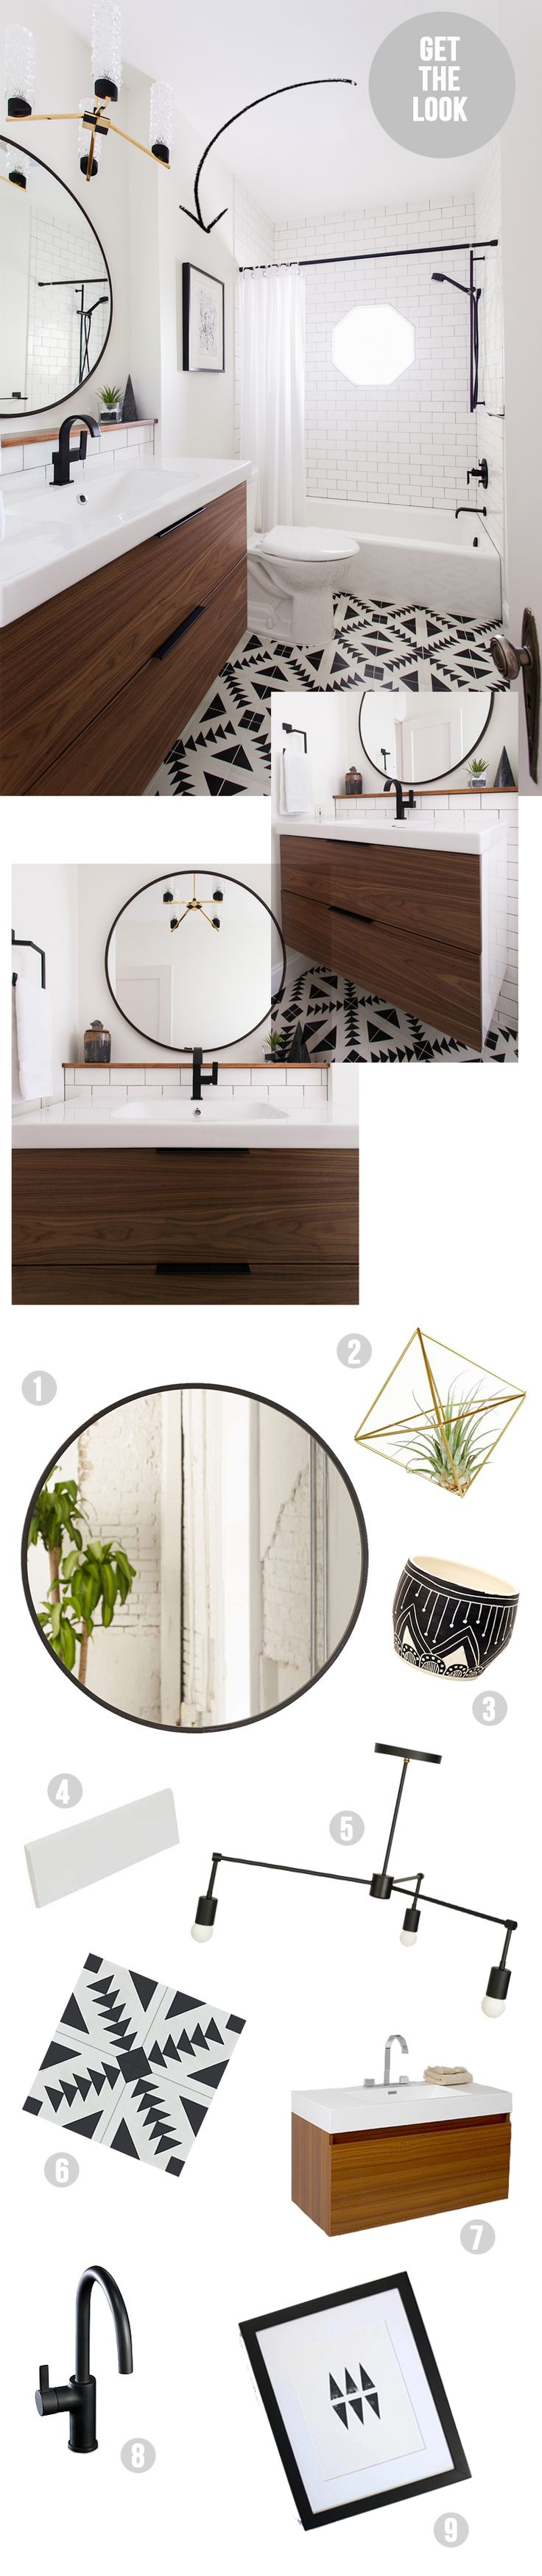 get the look bathroom                                                                                                                                                     More